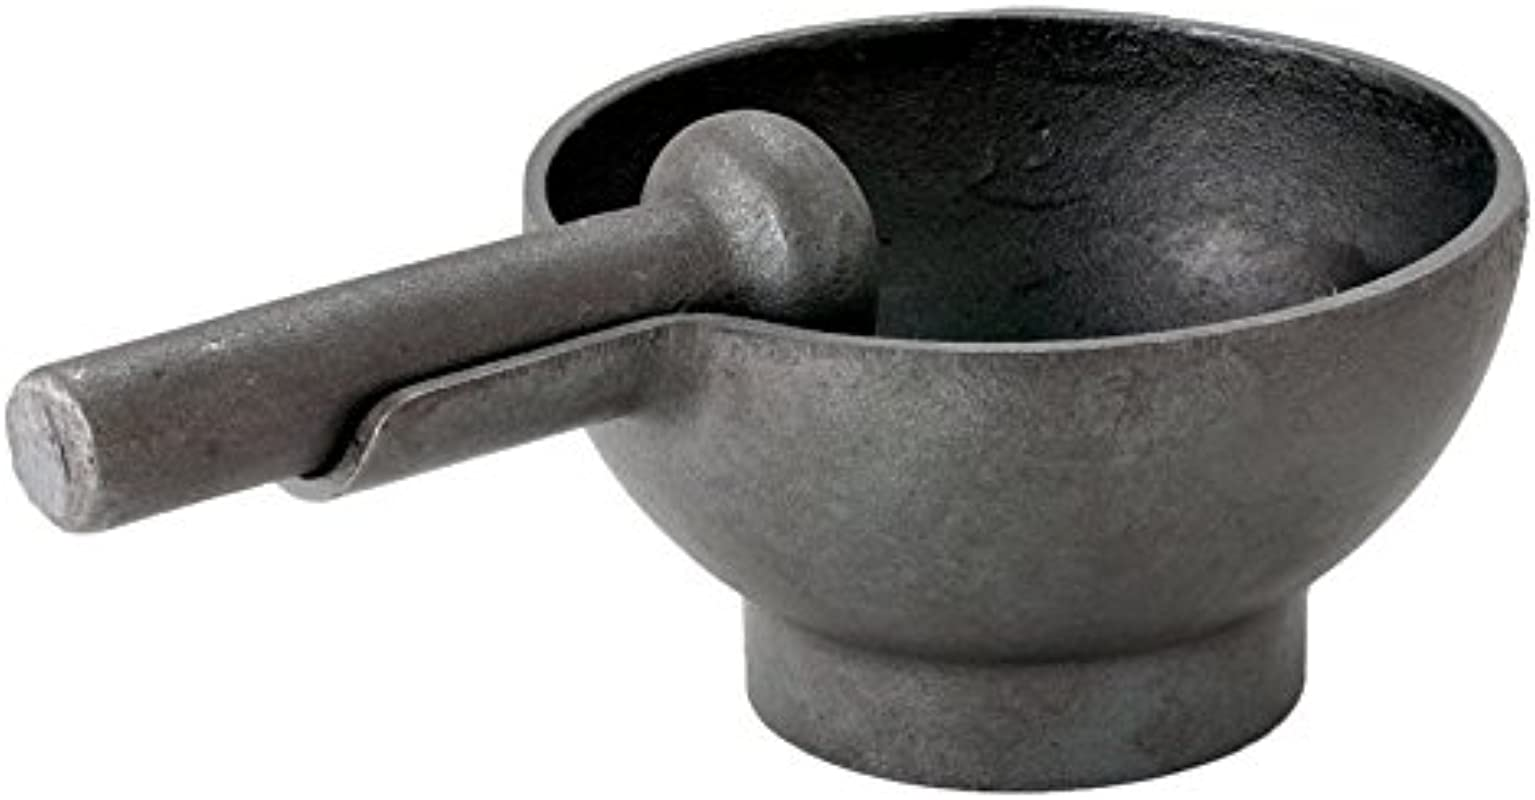 Robert Welch Pestle And Mortar